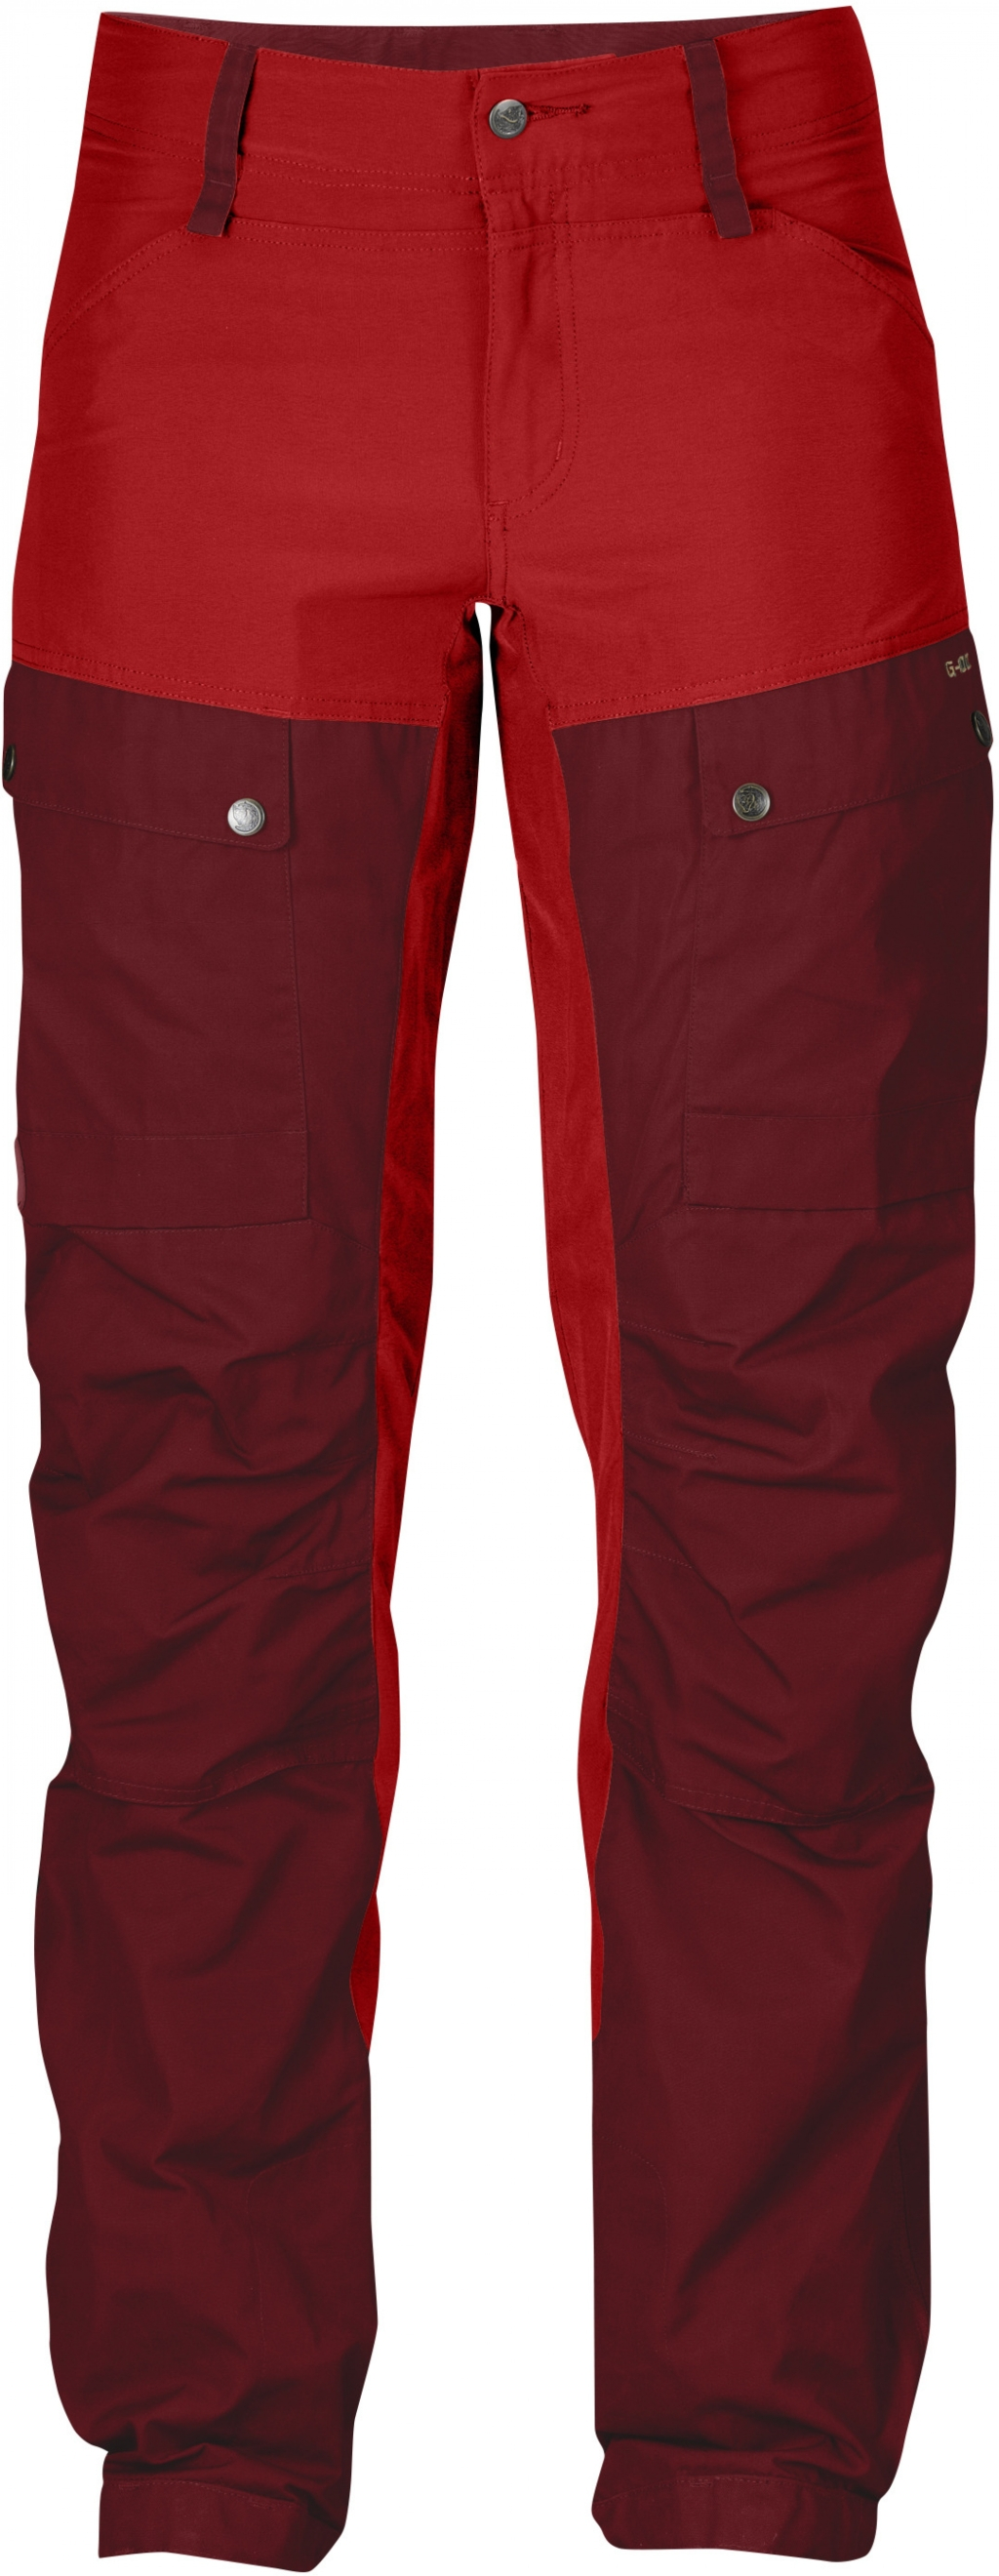 FjallRaven Keb Trousers W Curved Ox Red-30